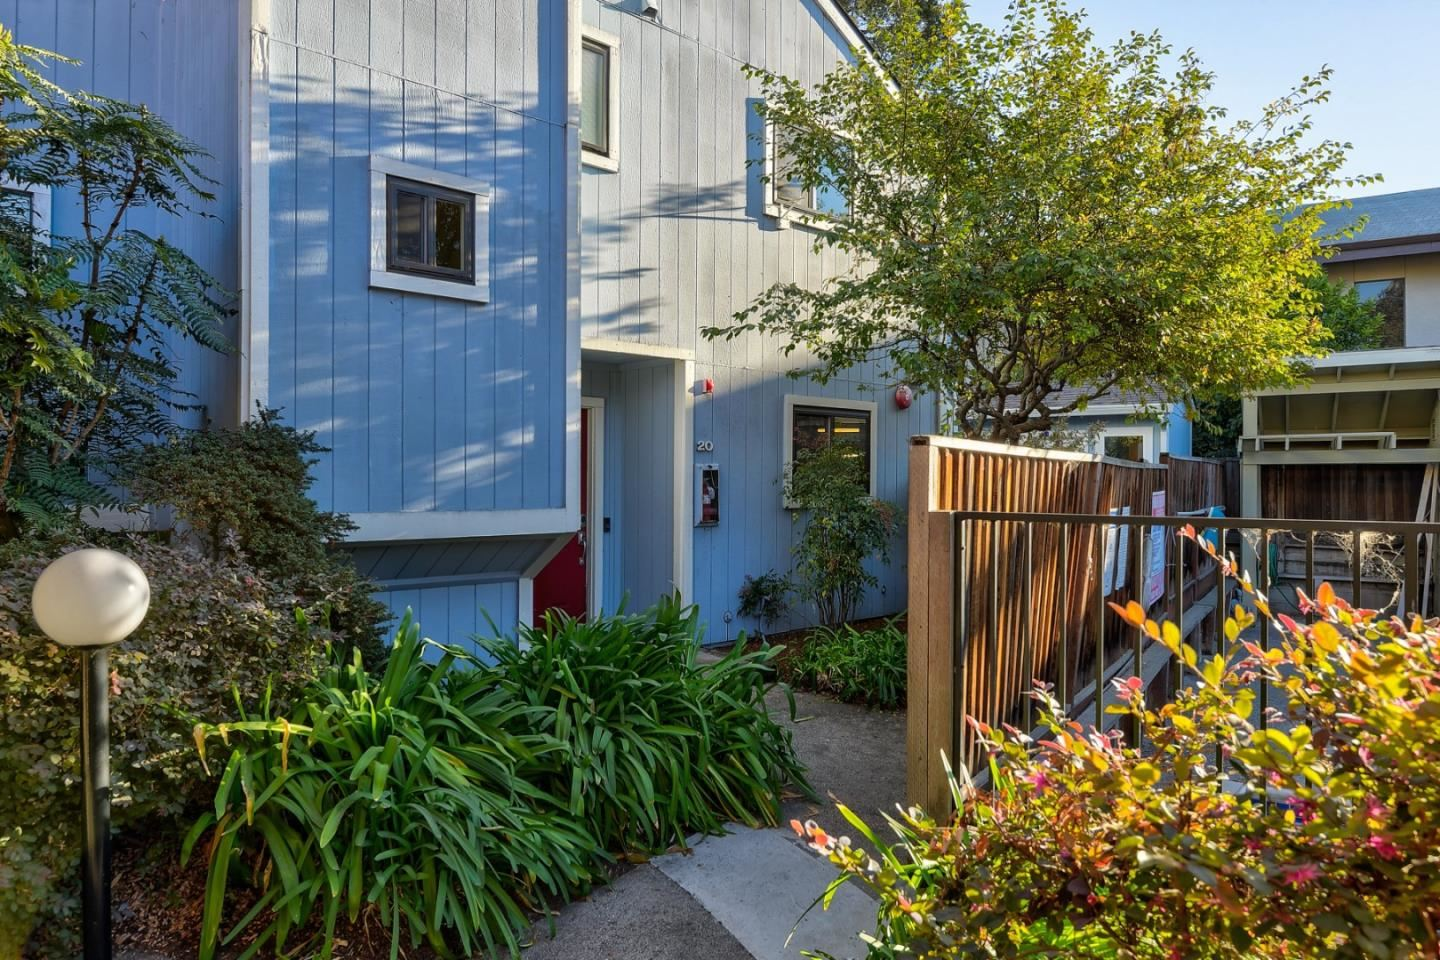 Photo for 221 N Rengstorff AVE 20 #20, MOUNTAIN VIEW, CA 94043 (MLS # ML81820633)